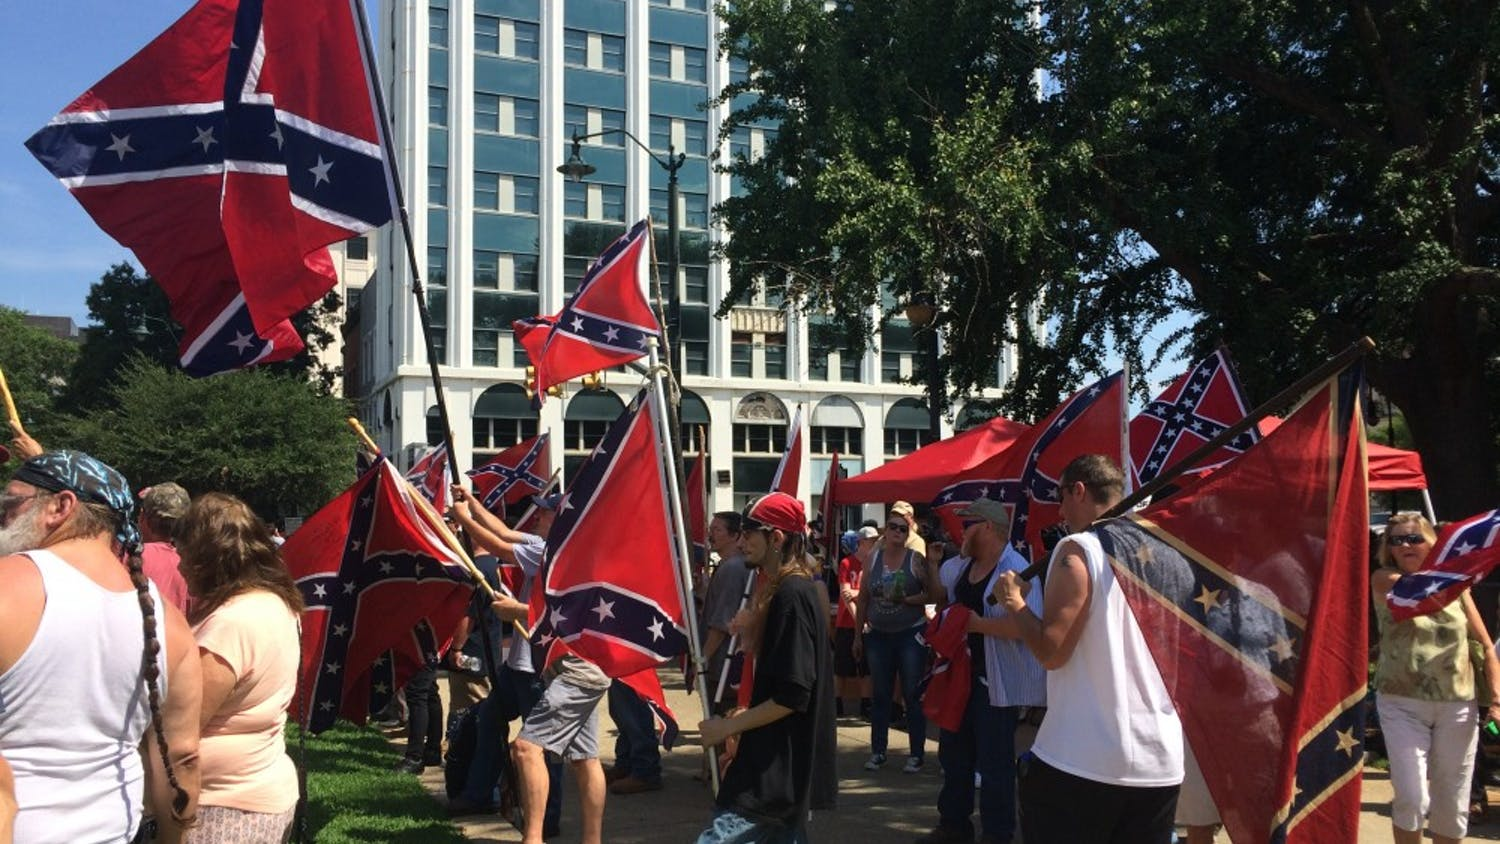 Citizens carry Confederate flags at a rally outside the Statehouseon Sunday, July 10, one year after the flag's removal from Statehouse grounds.